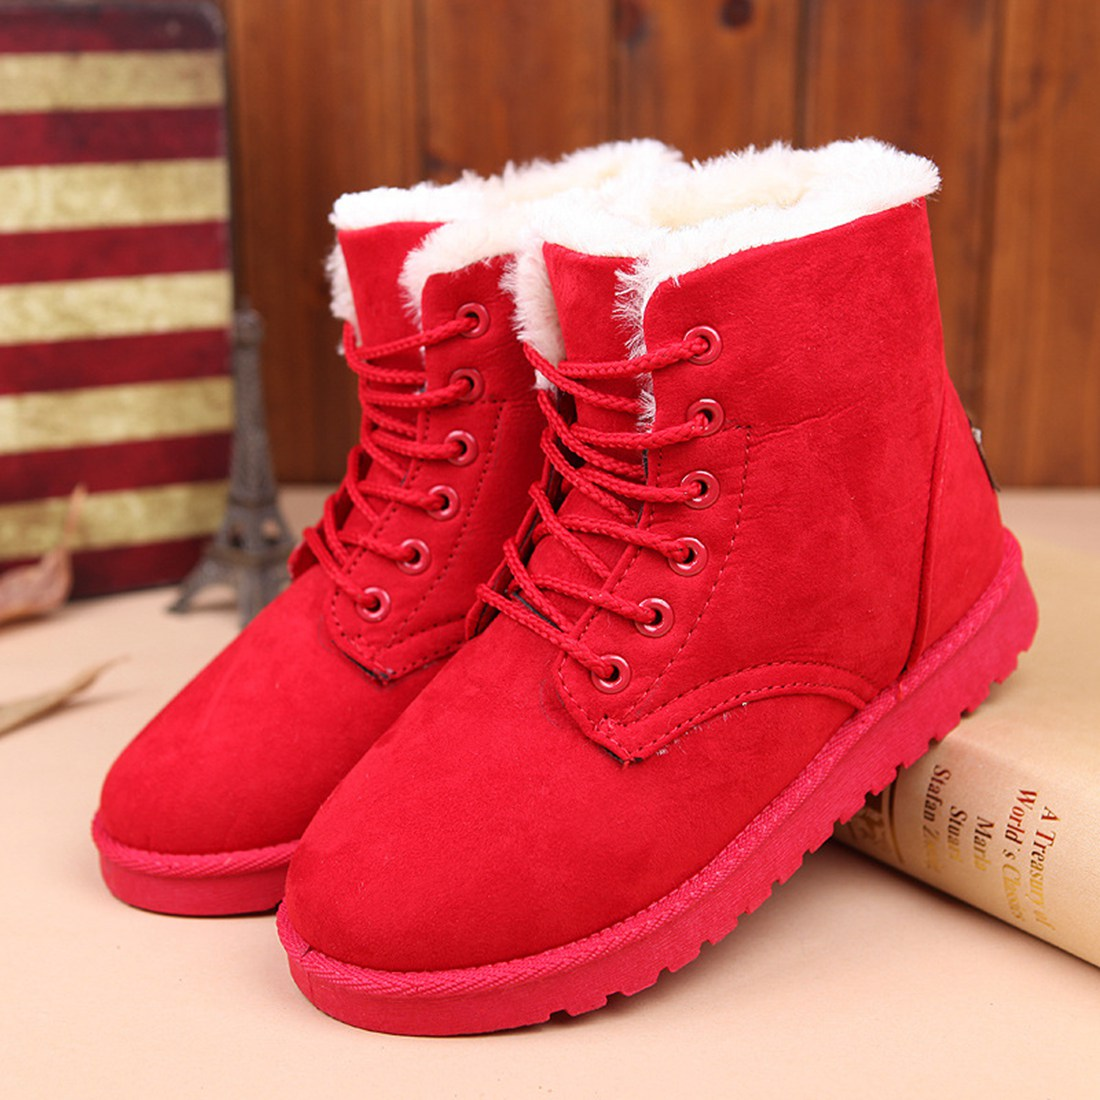 Warm Winter Chirsmas Snow Boots Women Fashion Lined Lace Up Ladies Platform Vogue Martin Boots Flat Fur Hot Mid-calf Ankle Shoes ms autumn and winter snow boots warm comfortable wholesale women ladies casual shoes lace up martin boots popular dt548